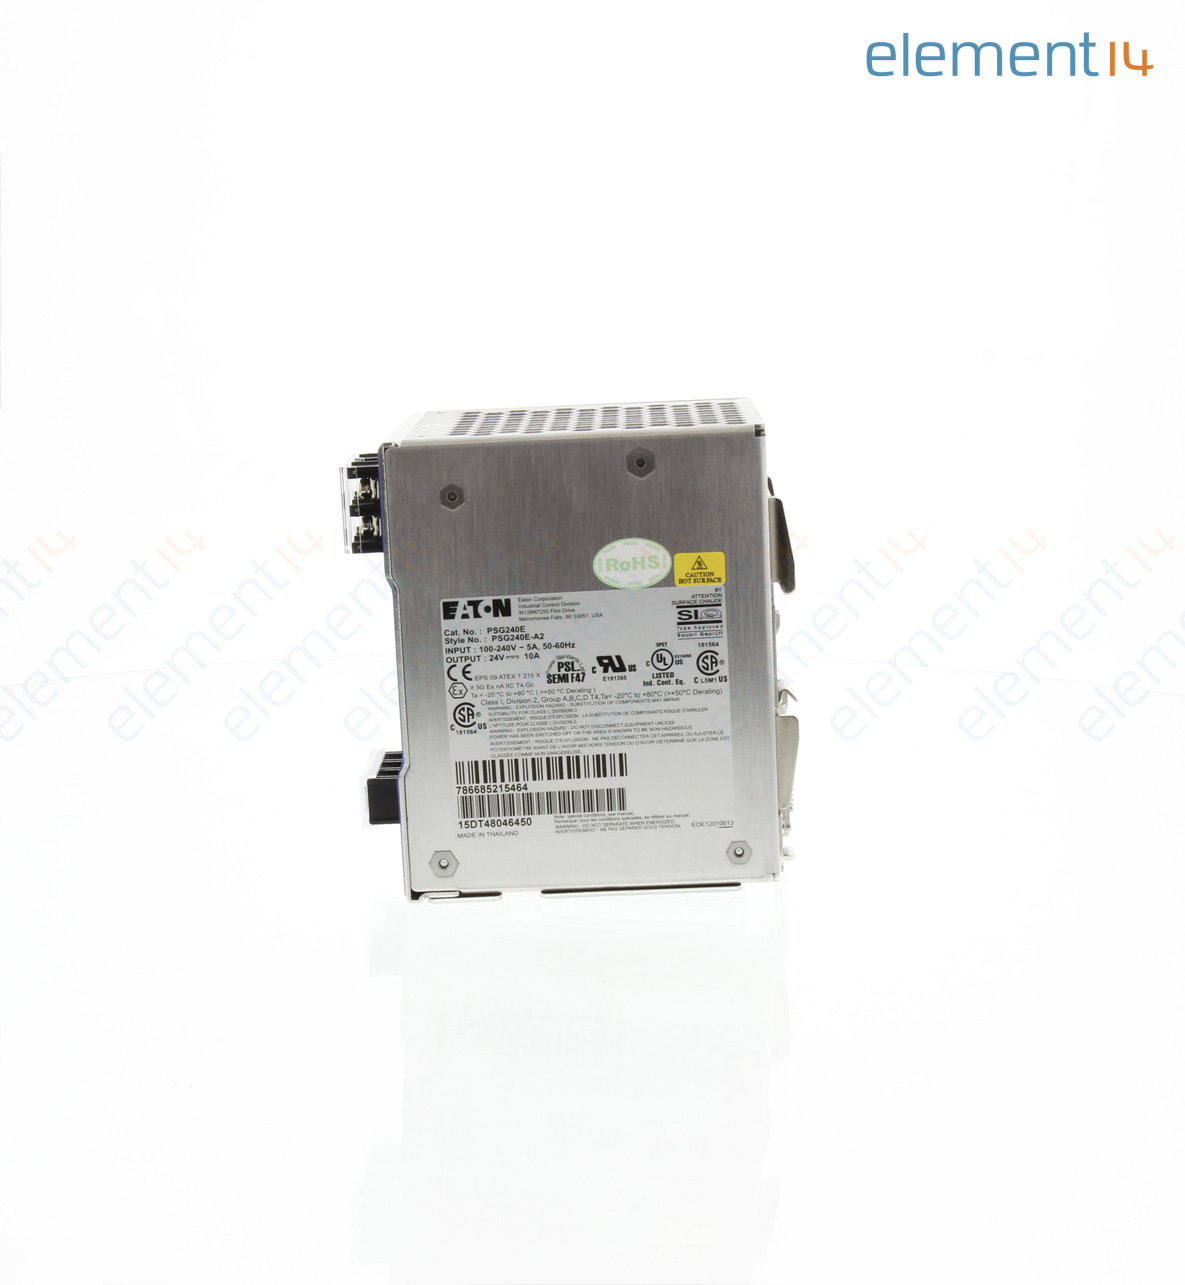 Psg240e Eaton Ac Dc Din Rail Power Supply Psu Ite Medical Filter Units Out Terminals With A Heavy Load The Add To Compare